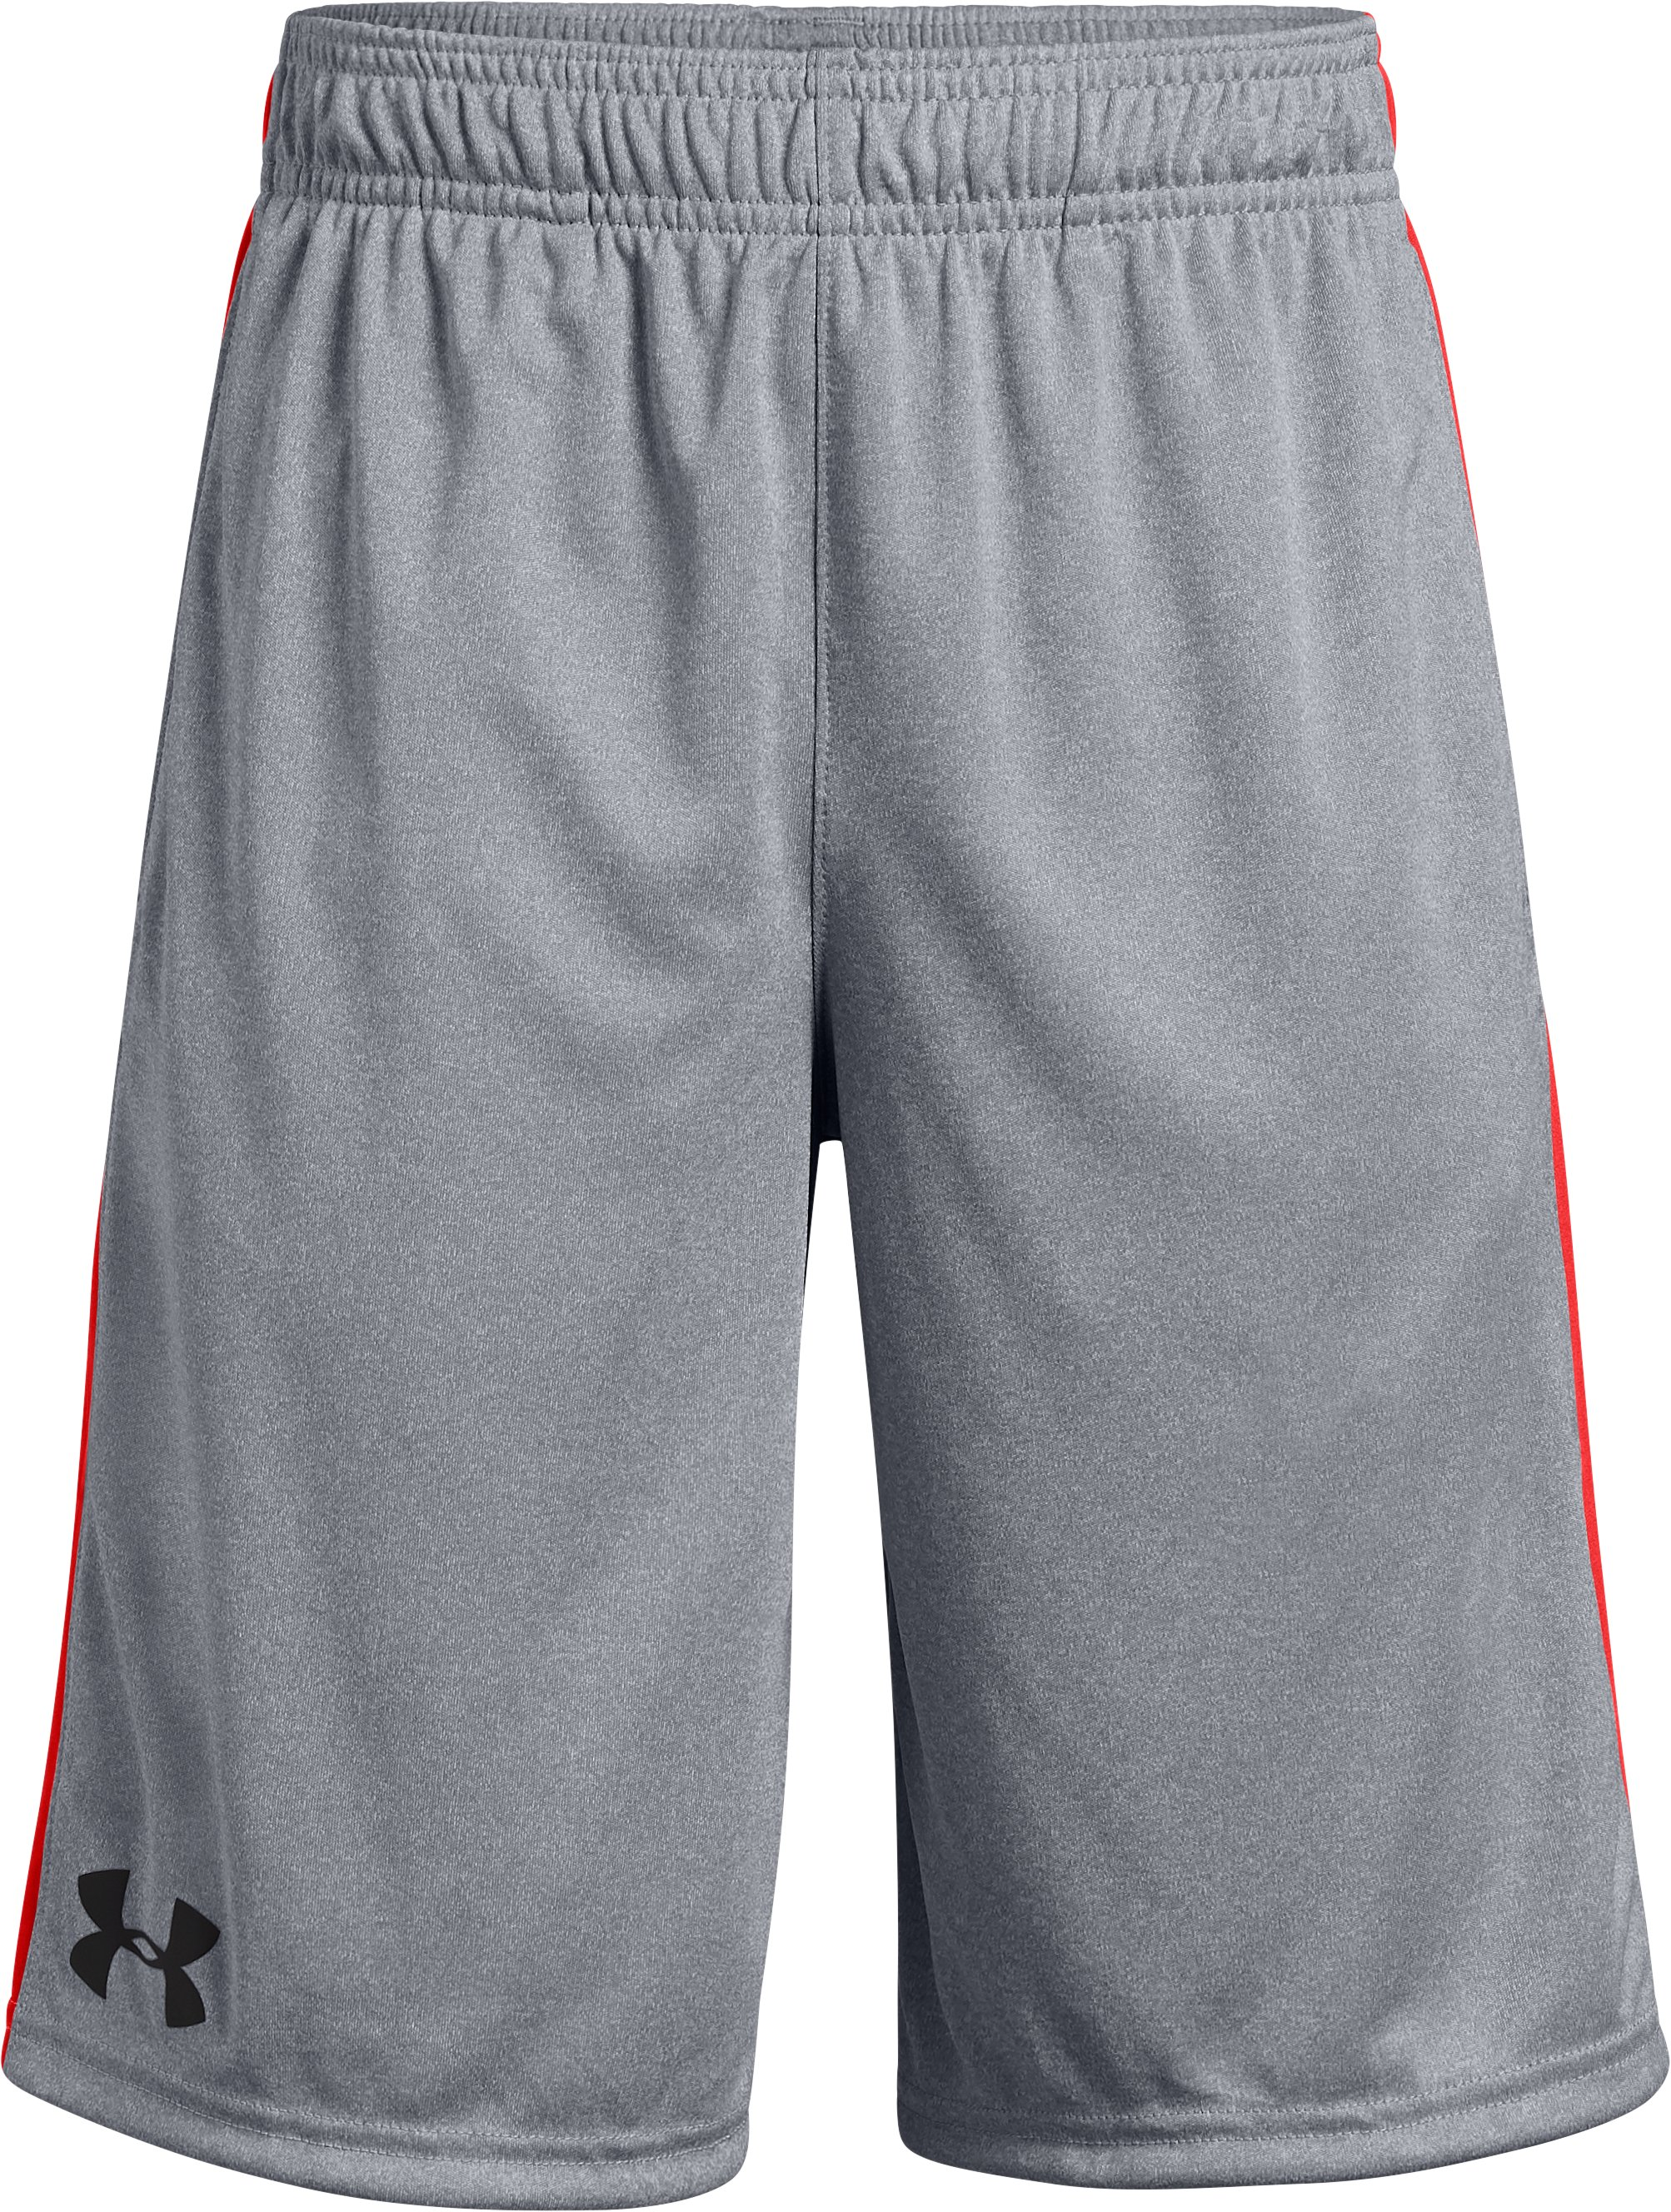 Boys' UA Stunt Shorts, STEEL LIGHT HEATHER